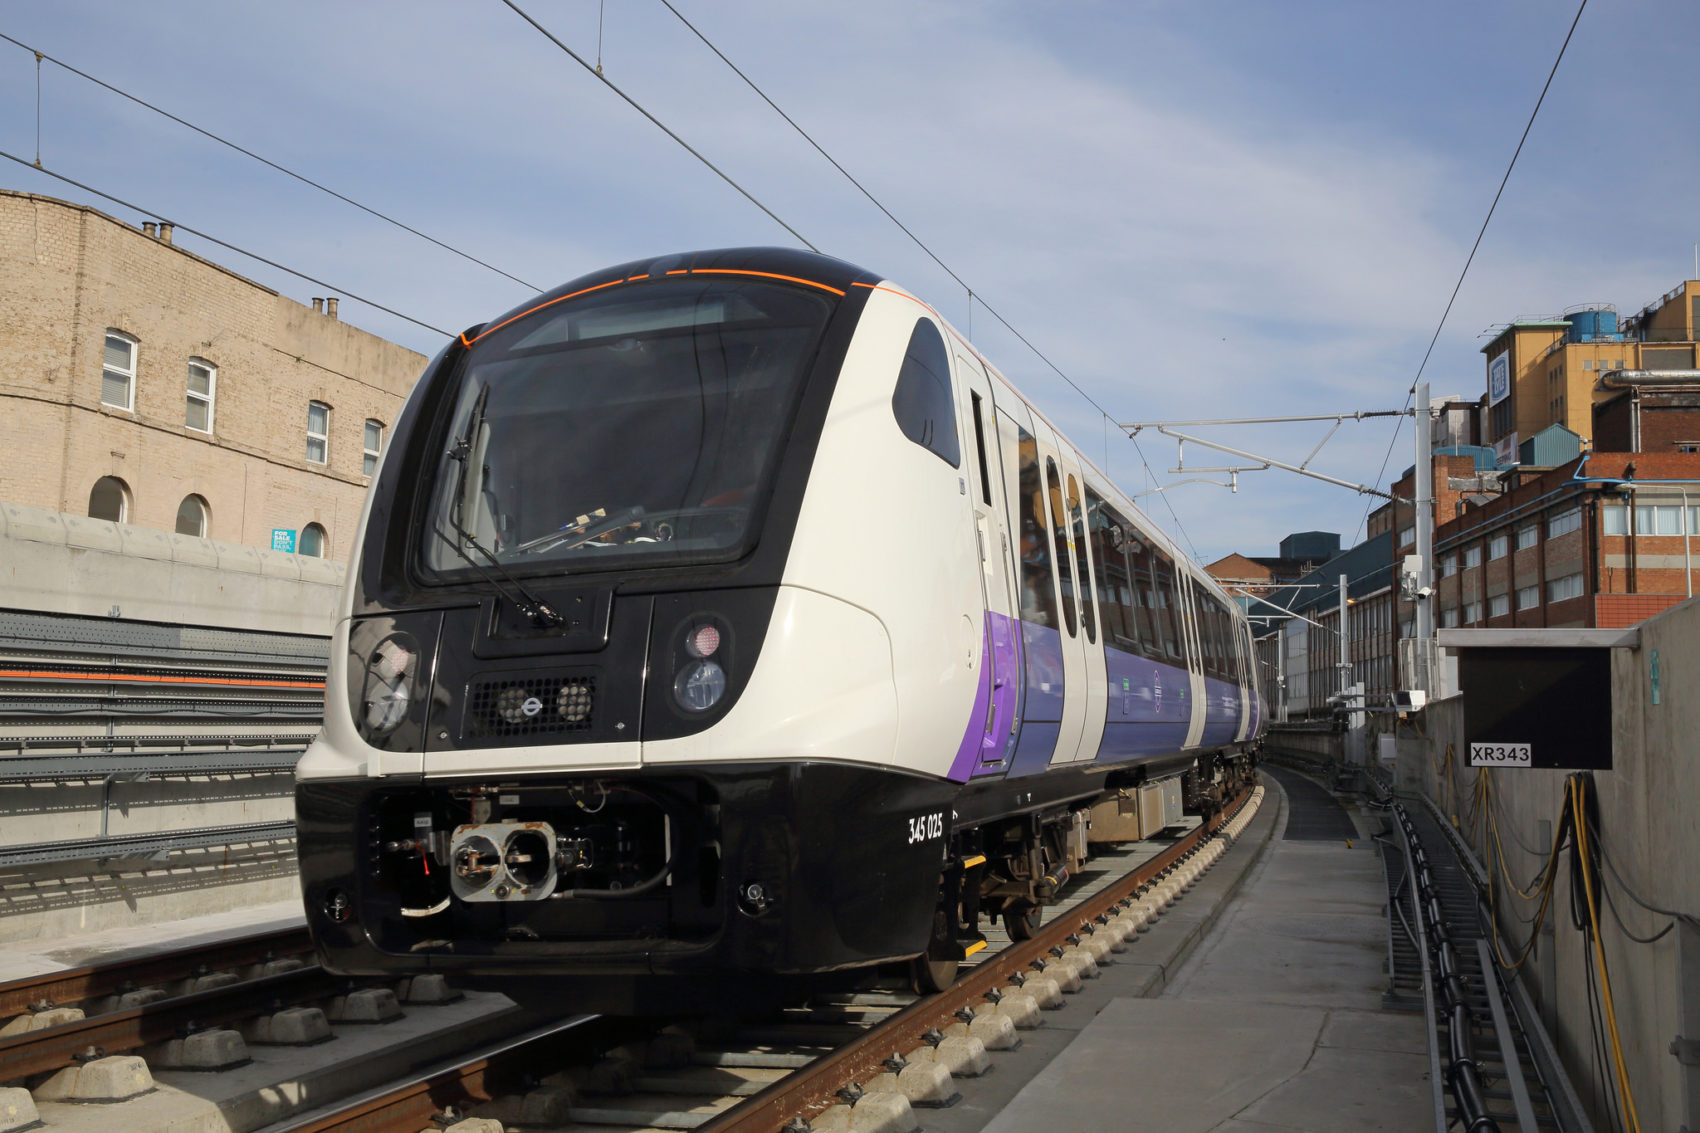 An Elizabeth Line test train passes through Custom House station in April 2018. (Courtesy of Crossrail)